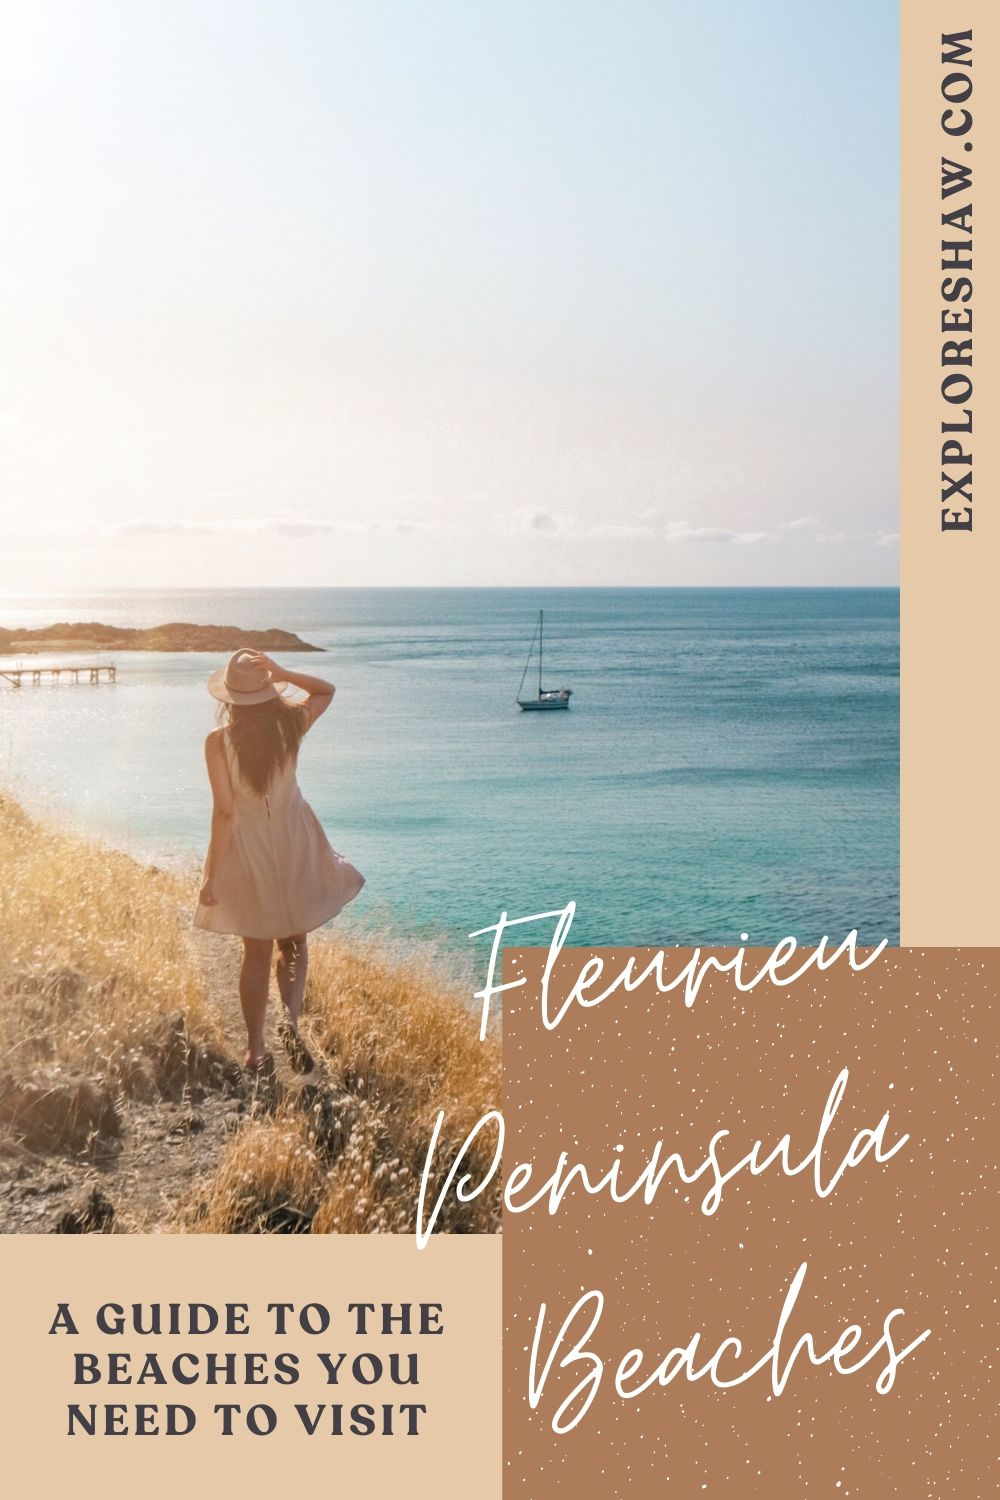 fleurieu peninsula beaches